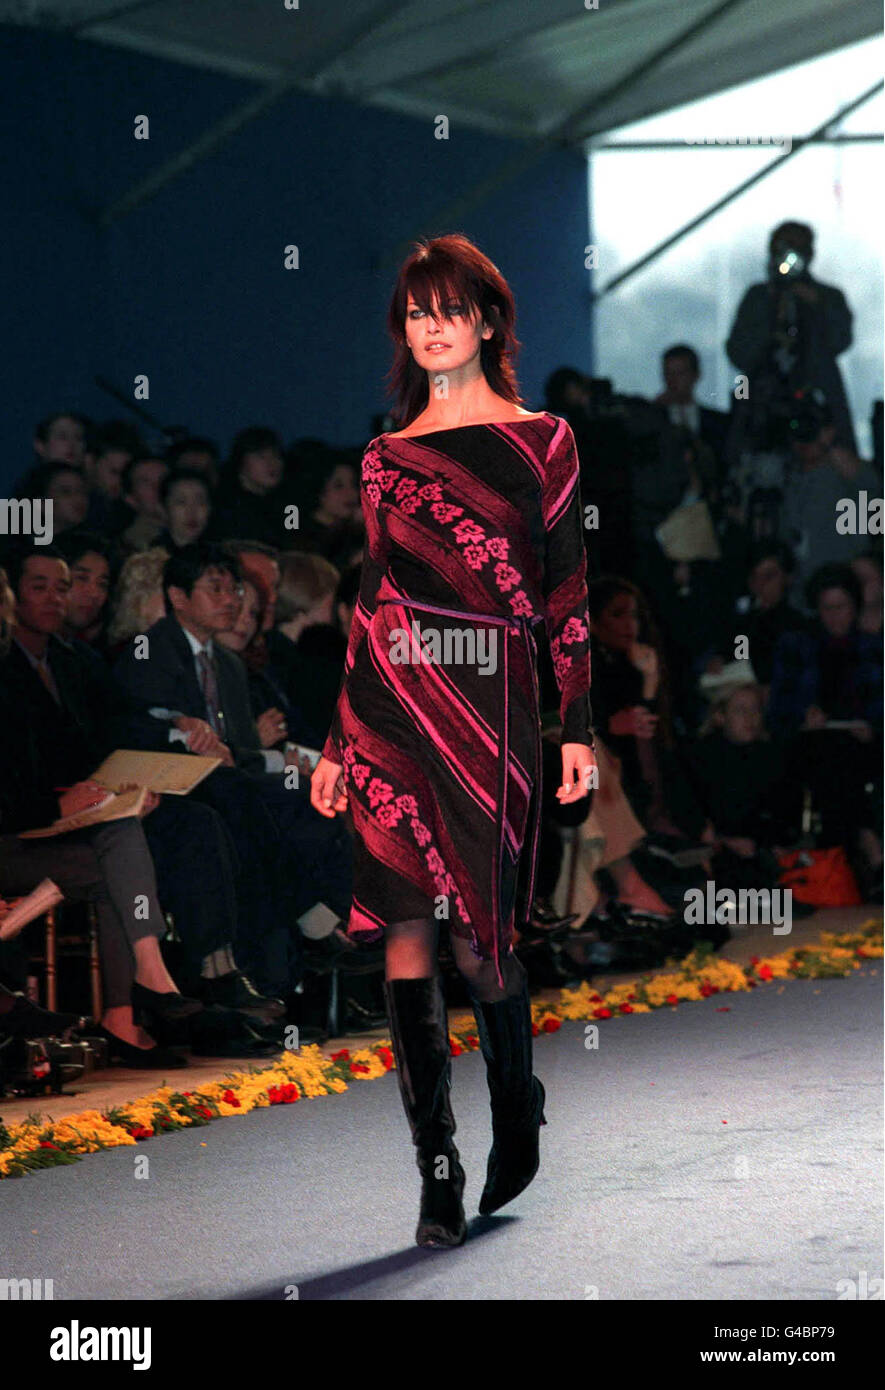 PA NEWS PHOTO : 11/3/98 : A MODEL WEARS A DRESS FROM THE CHLOE FALL/WINTER 1998/1999 COLLECTION IN PARIS, STELLA - Stock Image